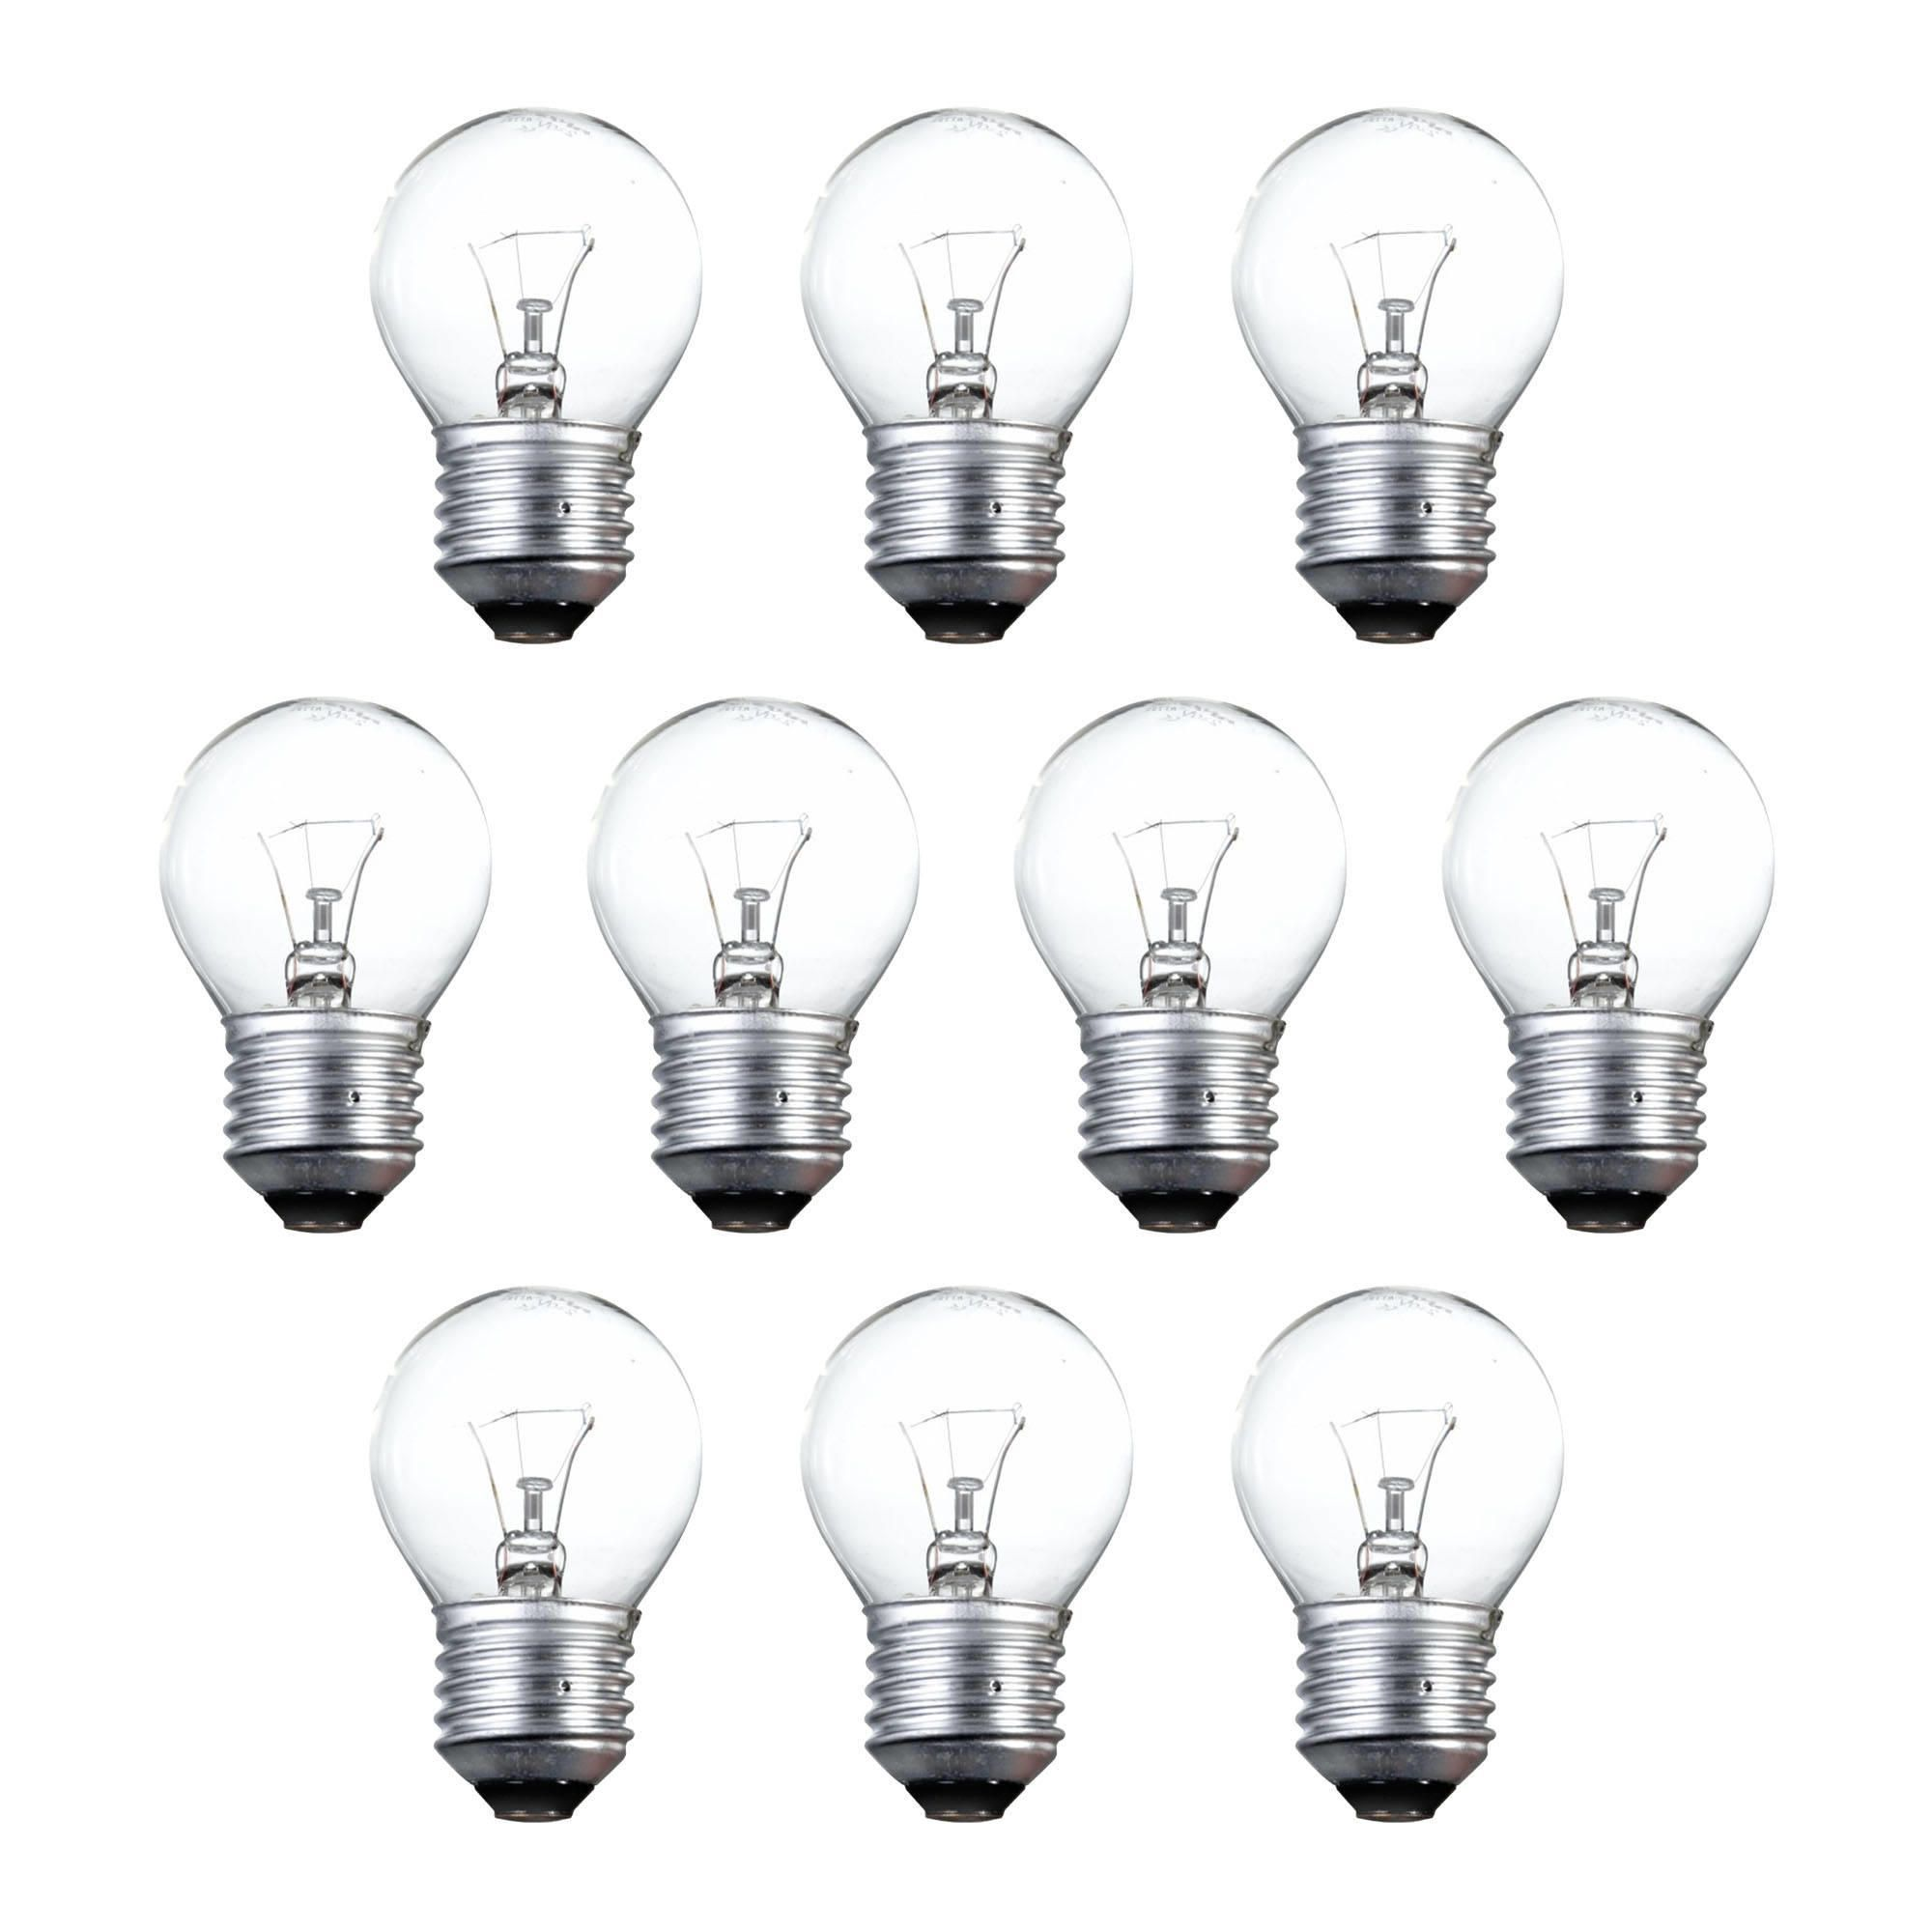 Light Bulbs Online Edison Light Bulbs Shop For Cheap Lighting And Save Online